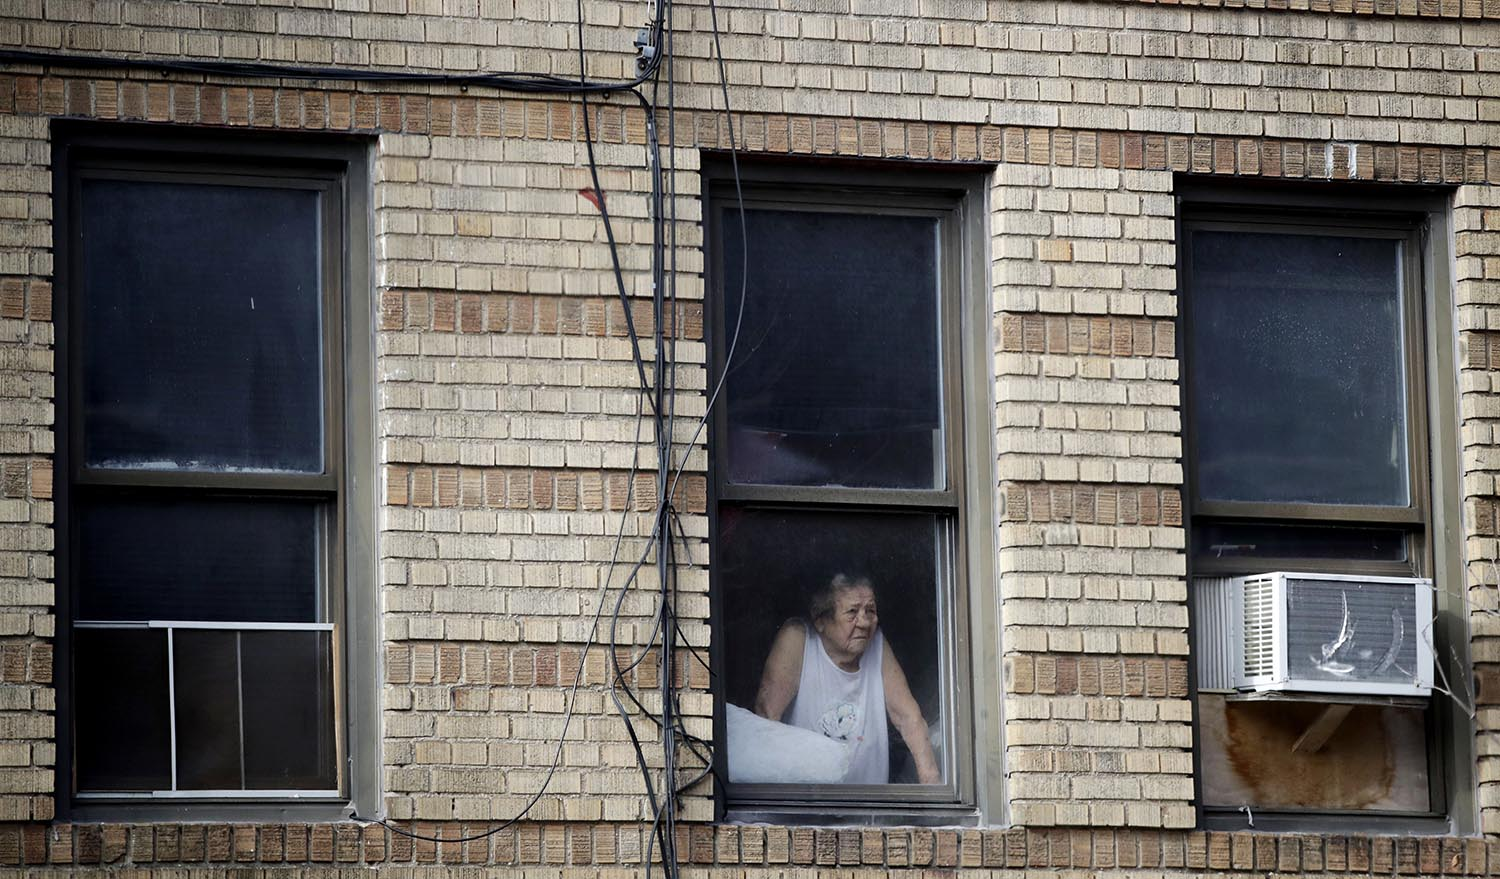 <div class='meta'><div class='origin-logo' data-origin='AP'></div><span class='caption-text' data-credit='AP Photo/Julio Cortez'>A woman looks out the window of a building adjacent to an apartment building where more than 10 people died in fire a day earlier in the Bronx.</span></div>